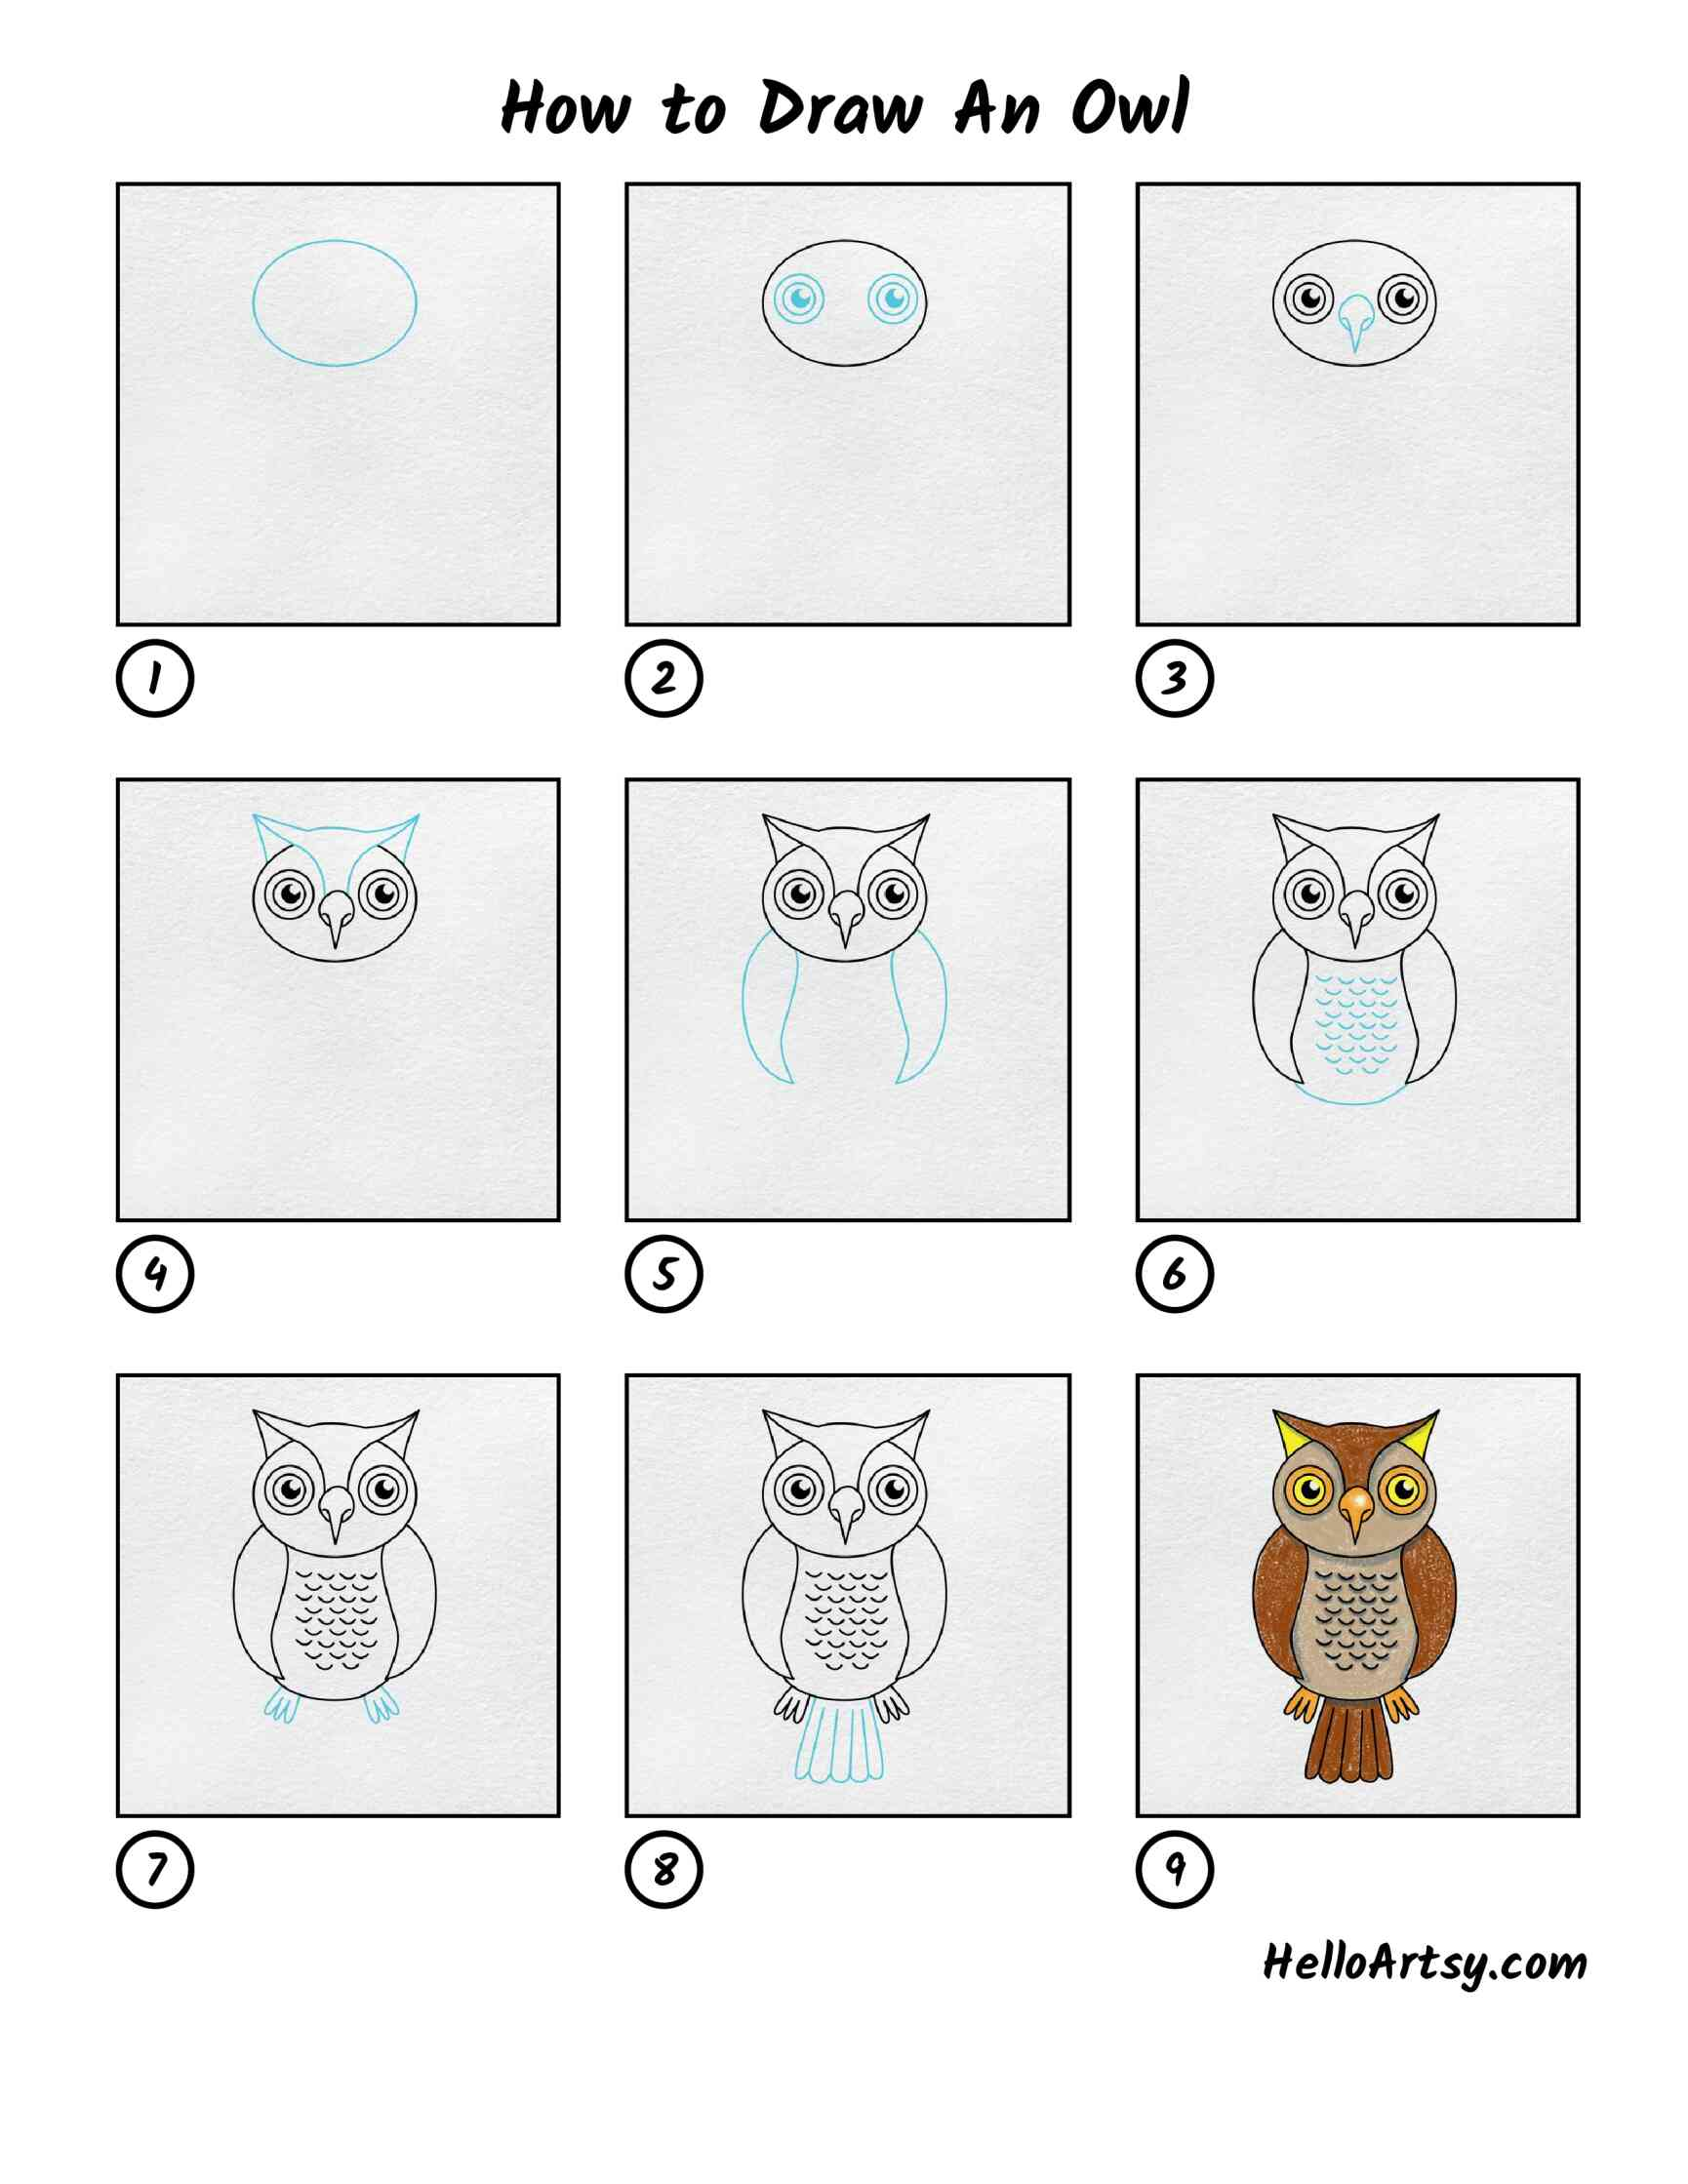 How To Draw An Owl: All Steps